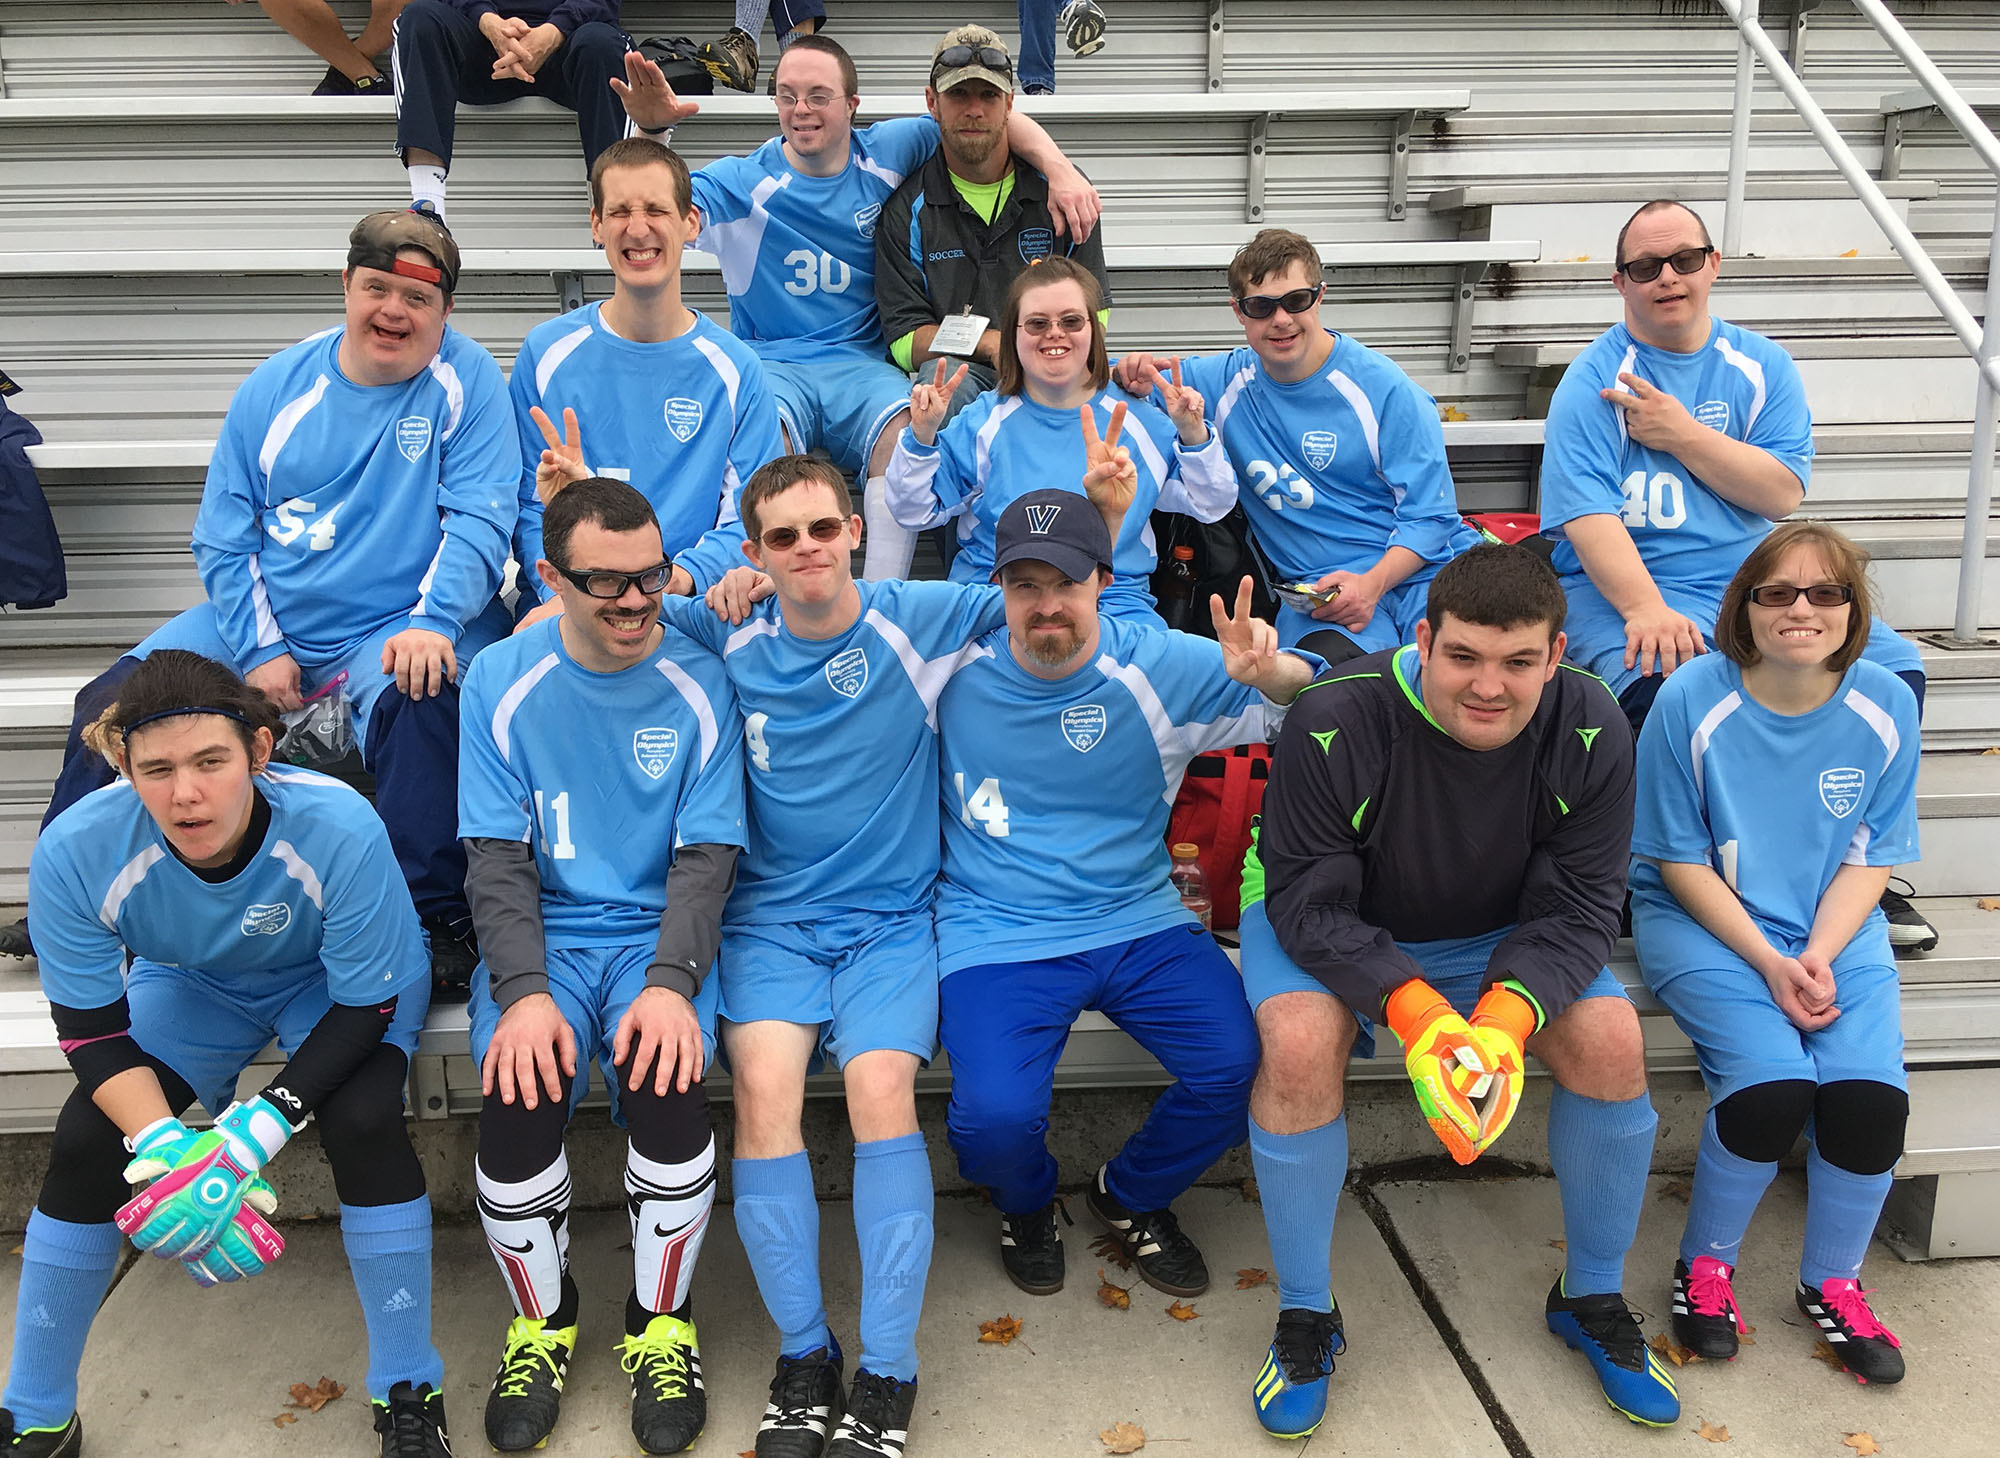 "Clair Duffy (front row, left) was a goalkeeper and utility player for this Delaware County soccer team, one of several Delco squads which won titles in the 2018 Pennsylvania Special Olympics championships. Clair's favorite sport is actually softball, which she has played avidly since she was a kid (she's 32 now), said her mother Jane Duffy of Wallingford. Now the summer season is coming to a close, it's time to get ready for the fall soccer campaign, Jane said. ""Clair has a good time, whatever the sport. It's a great opportunity for her to socialize with other adults."" A product of the Wallingford-Swarthmore School District, Clair was a member of the Strath Haven marching band. Parents Jane and John Duffy plan to cheer her 7 x 7 soccer team on through the 2019 season, culminating in the Pennsylvania Special Olympics, to be held at Villanova University."